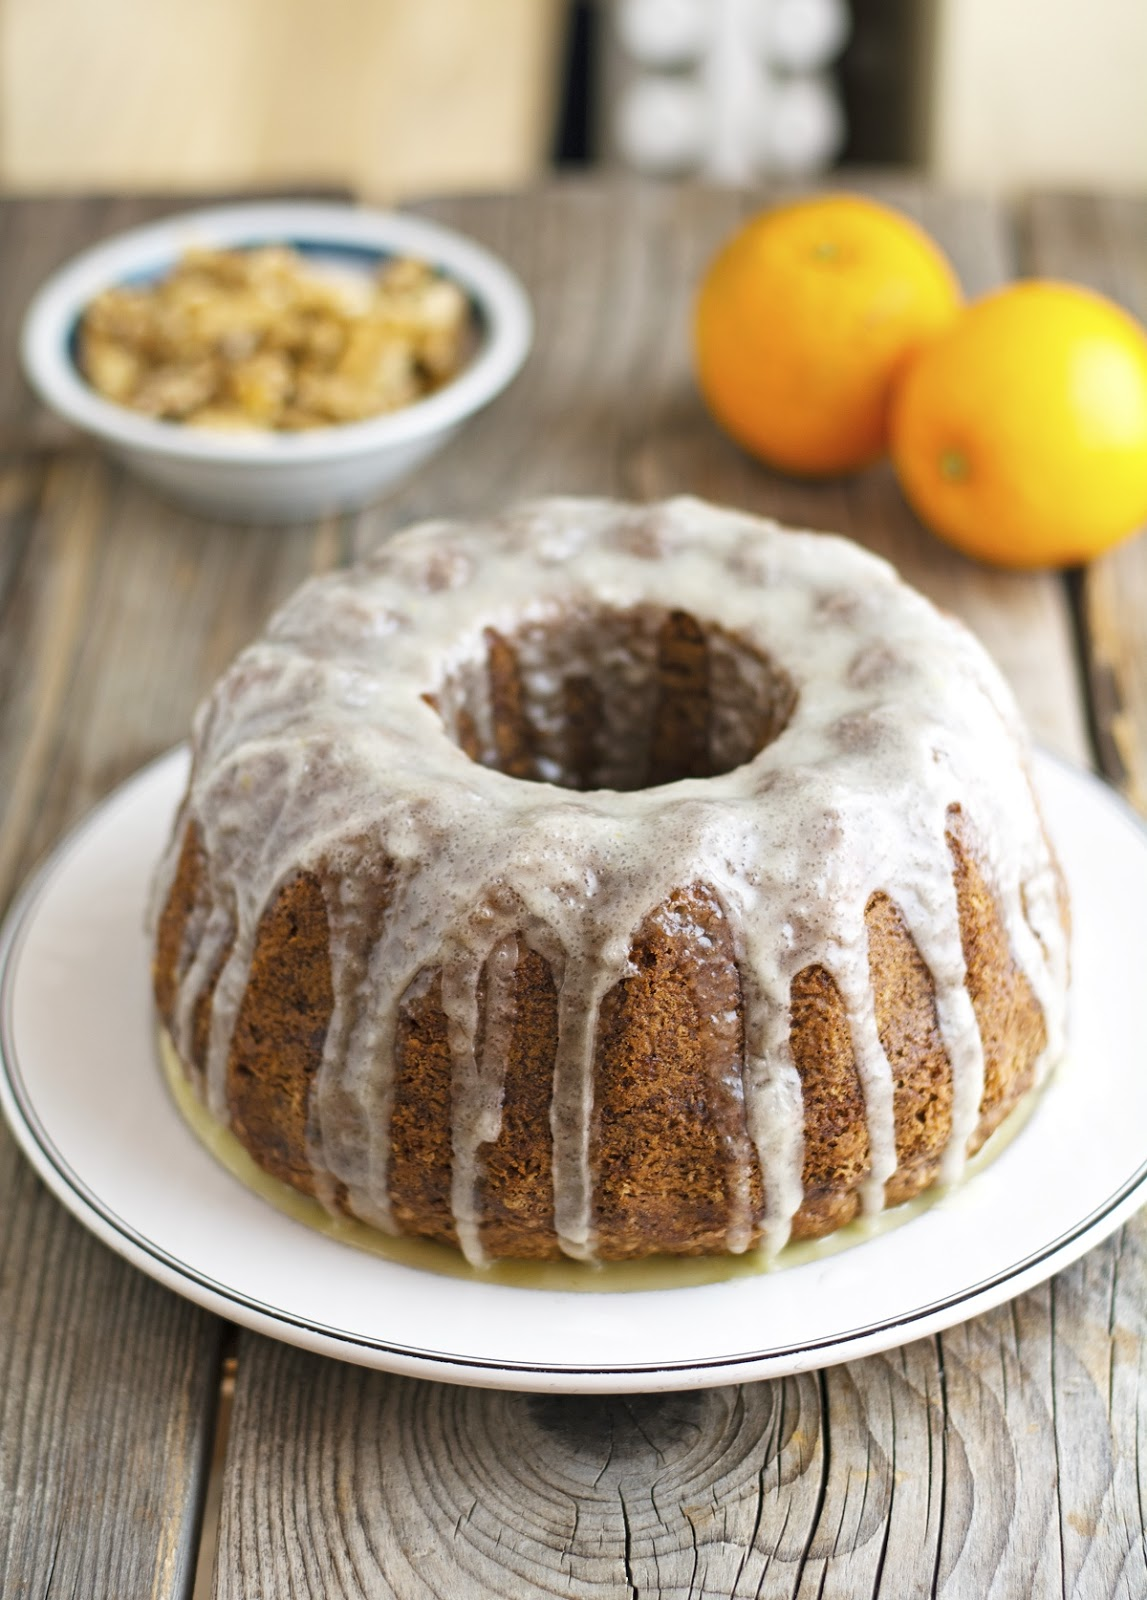 Zucchini Olive Oil Bundt Cake with Orange Glaze